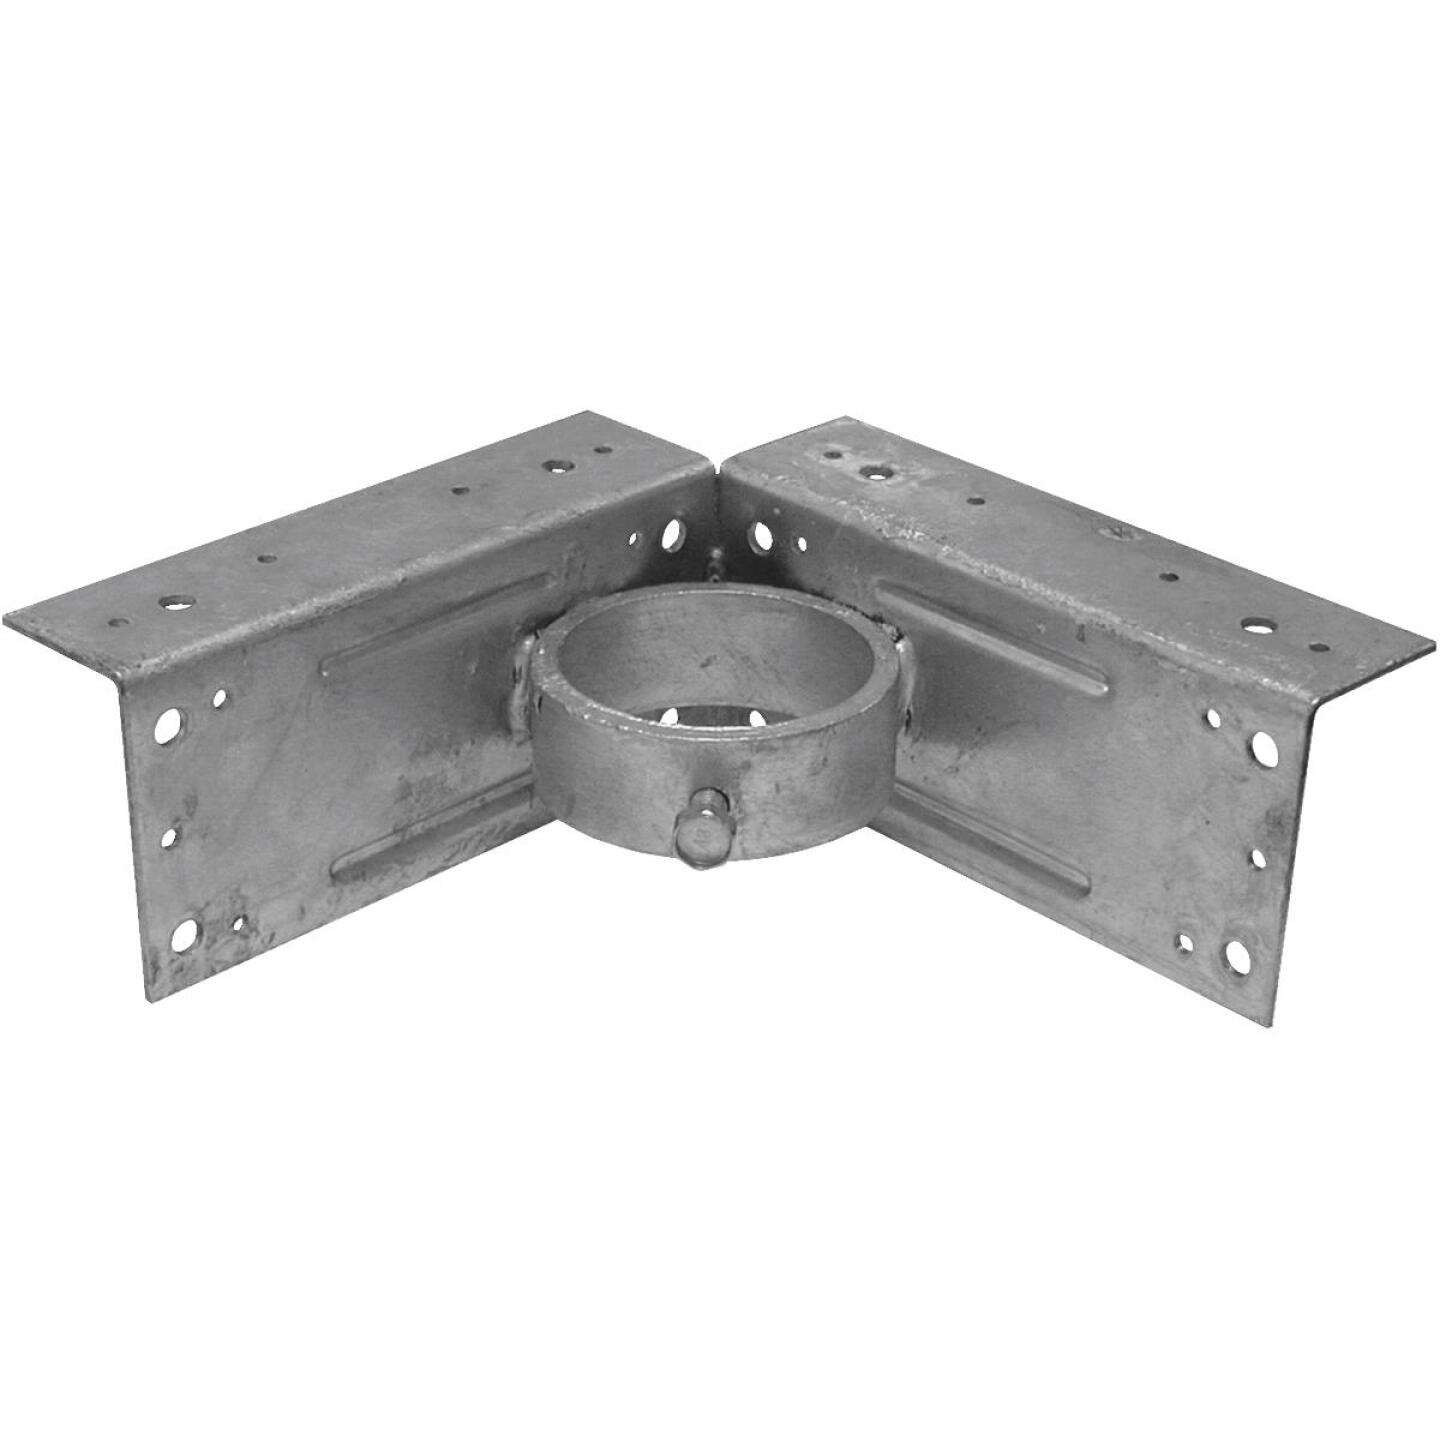 Midwest Air Tech Corner 2-3/8 in. Steel Fence Post Adapter Clamp Image 1